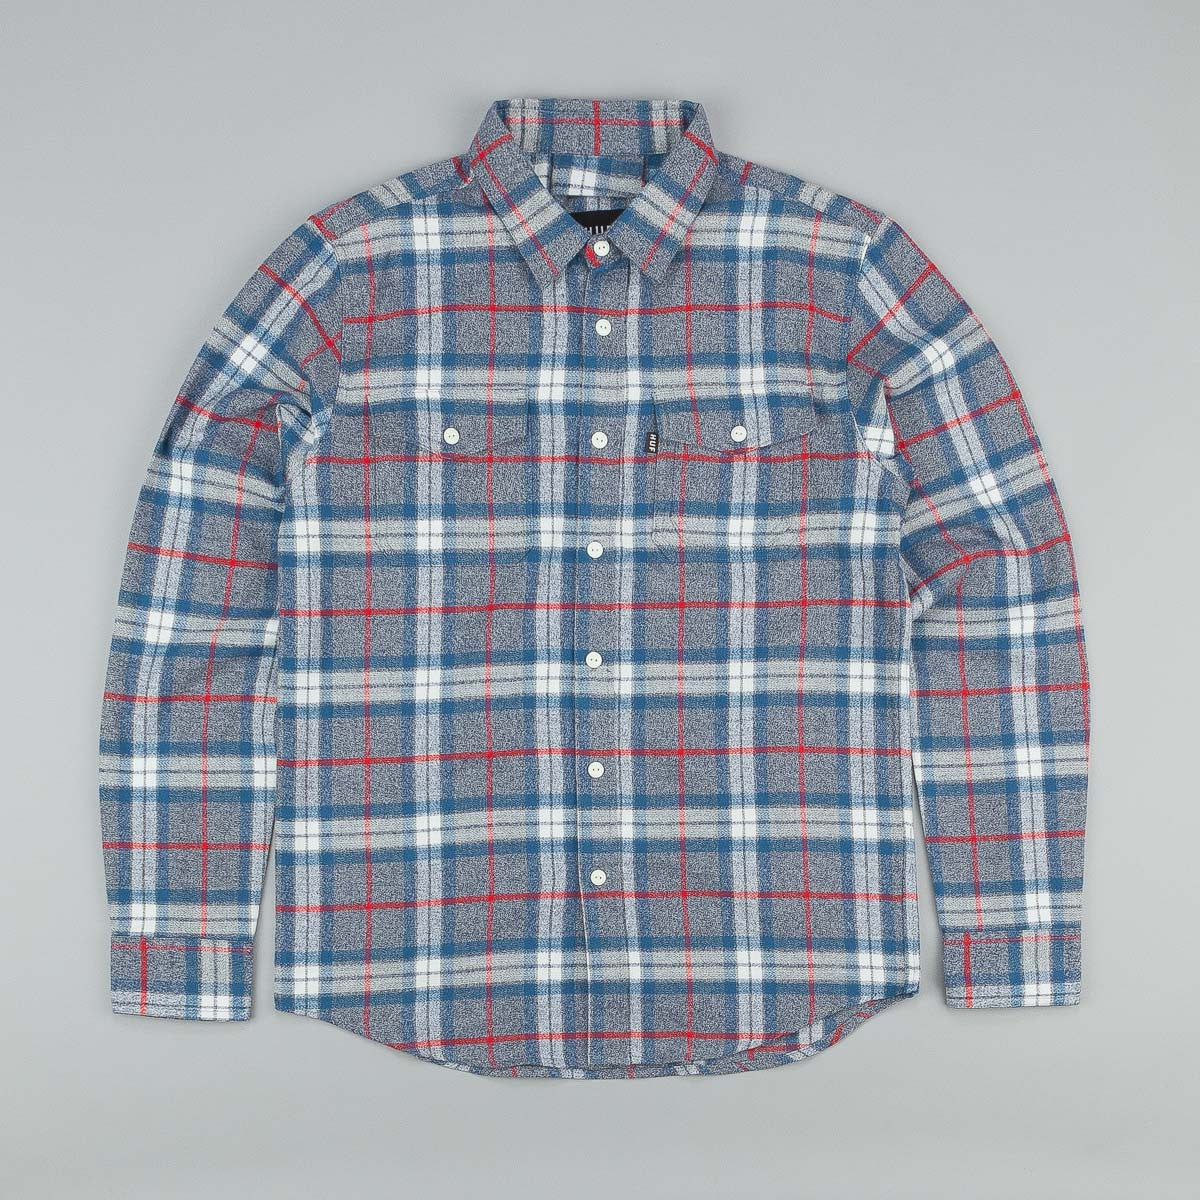 Huf Heavy Weight Flannel Long Sleeve Shirt